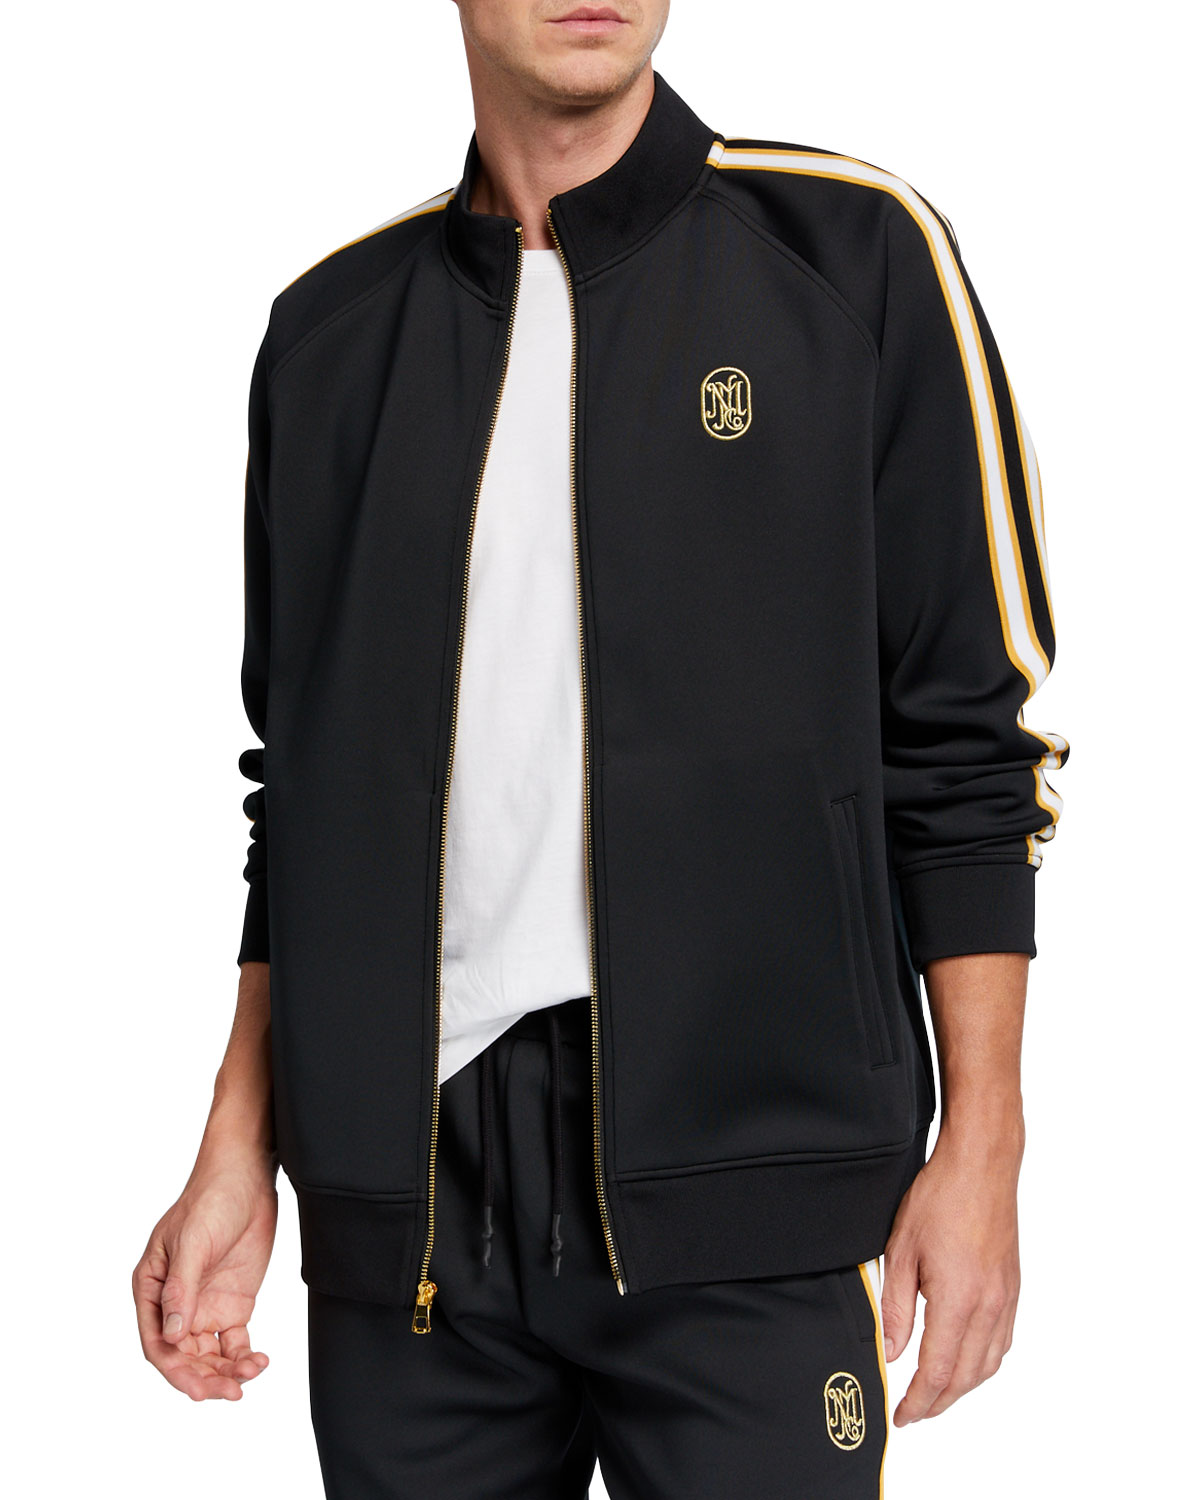 Neiman Marcus - Produced by Staple Men's Jacquard Stripe Track Jacket